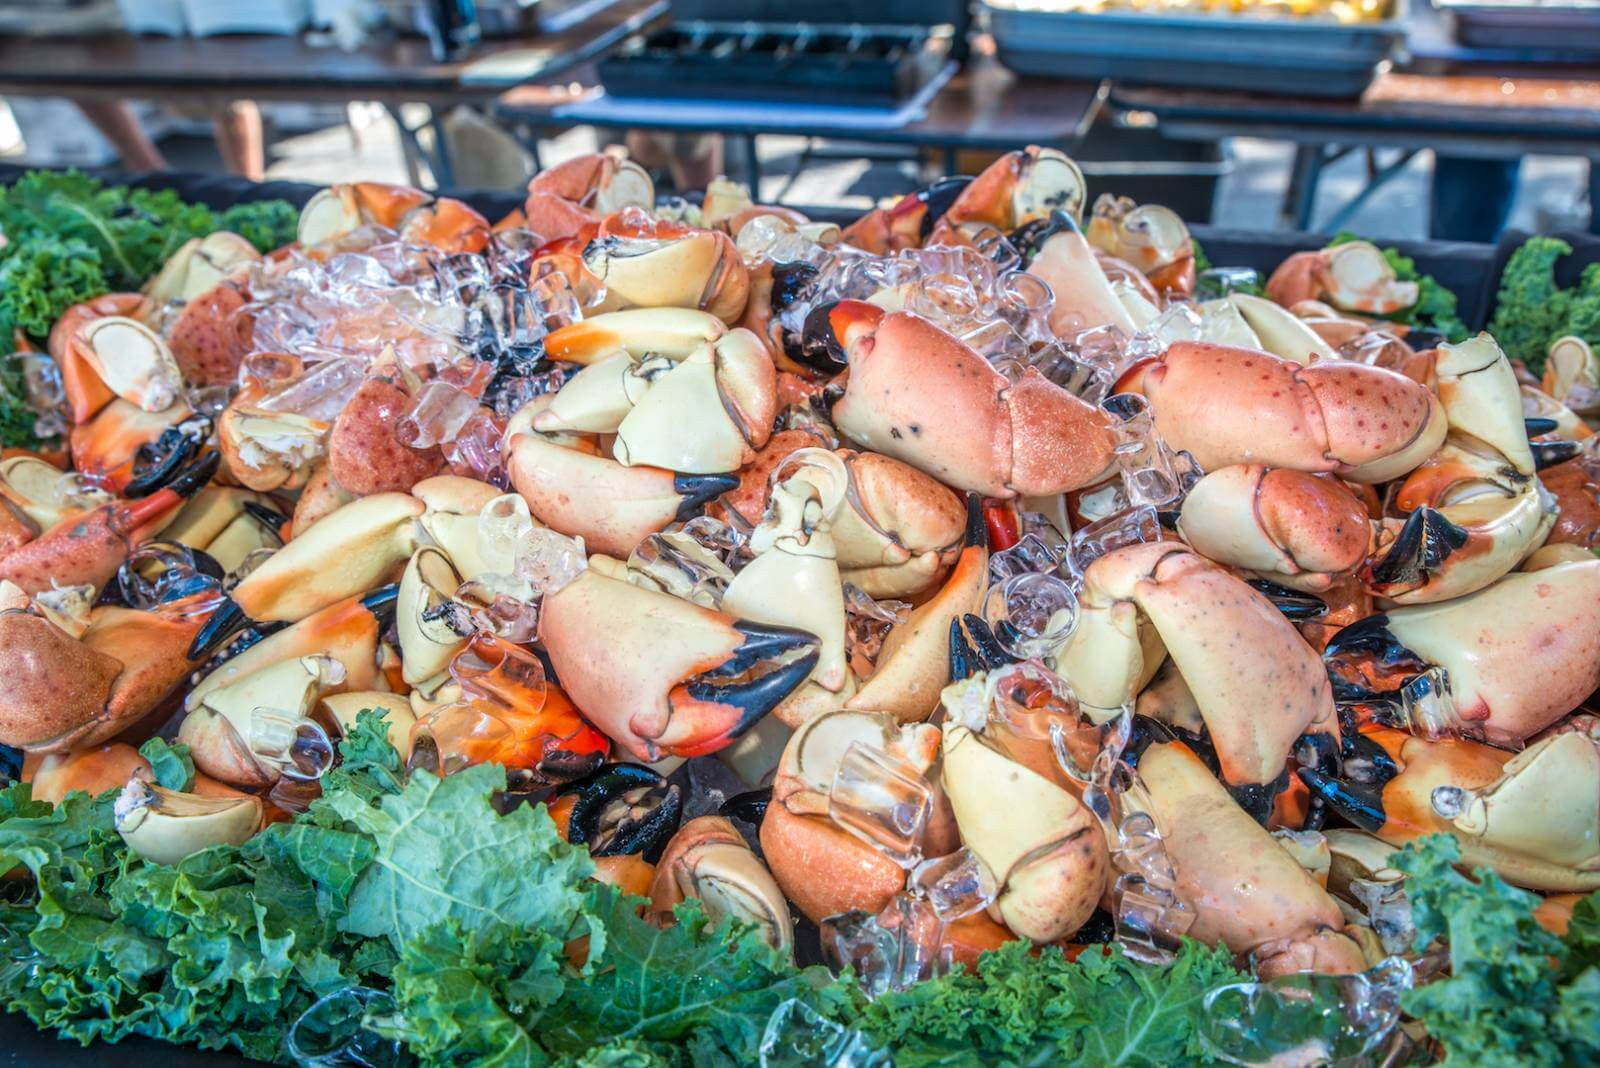 You might think that Miami is the Stone Crab Capital of the World – but you'd be wrong. It is Everglades City! Stone crabs are harvested from October 15 to May 15 and fishermen remove the claw and return the crabs to the ocean to regenerate new ones. Photo by Jennifer Brinkman.